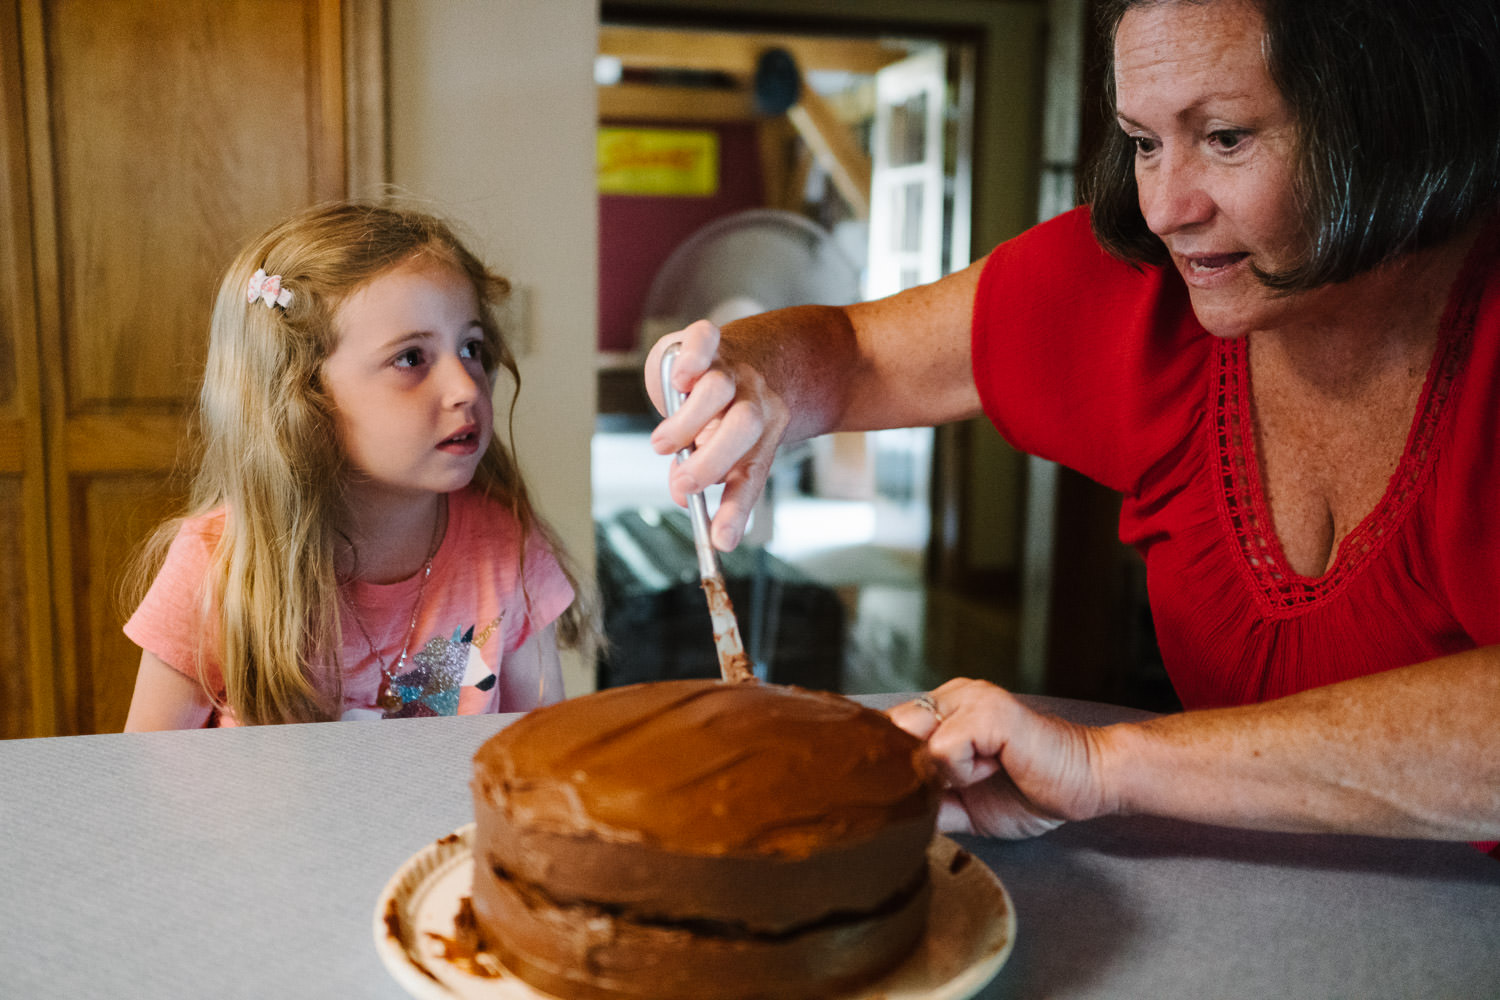 A woman and her granddaughter frost a cake in the kitchen.